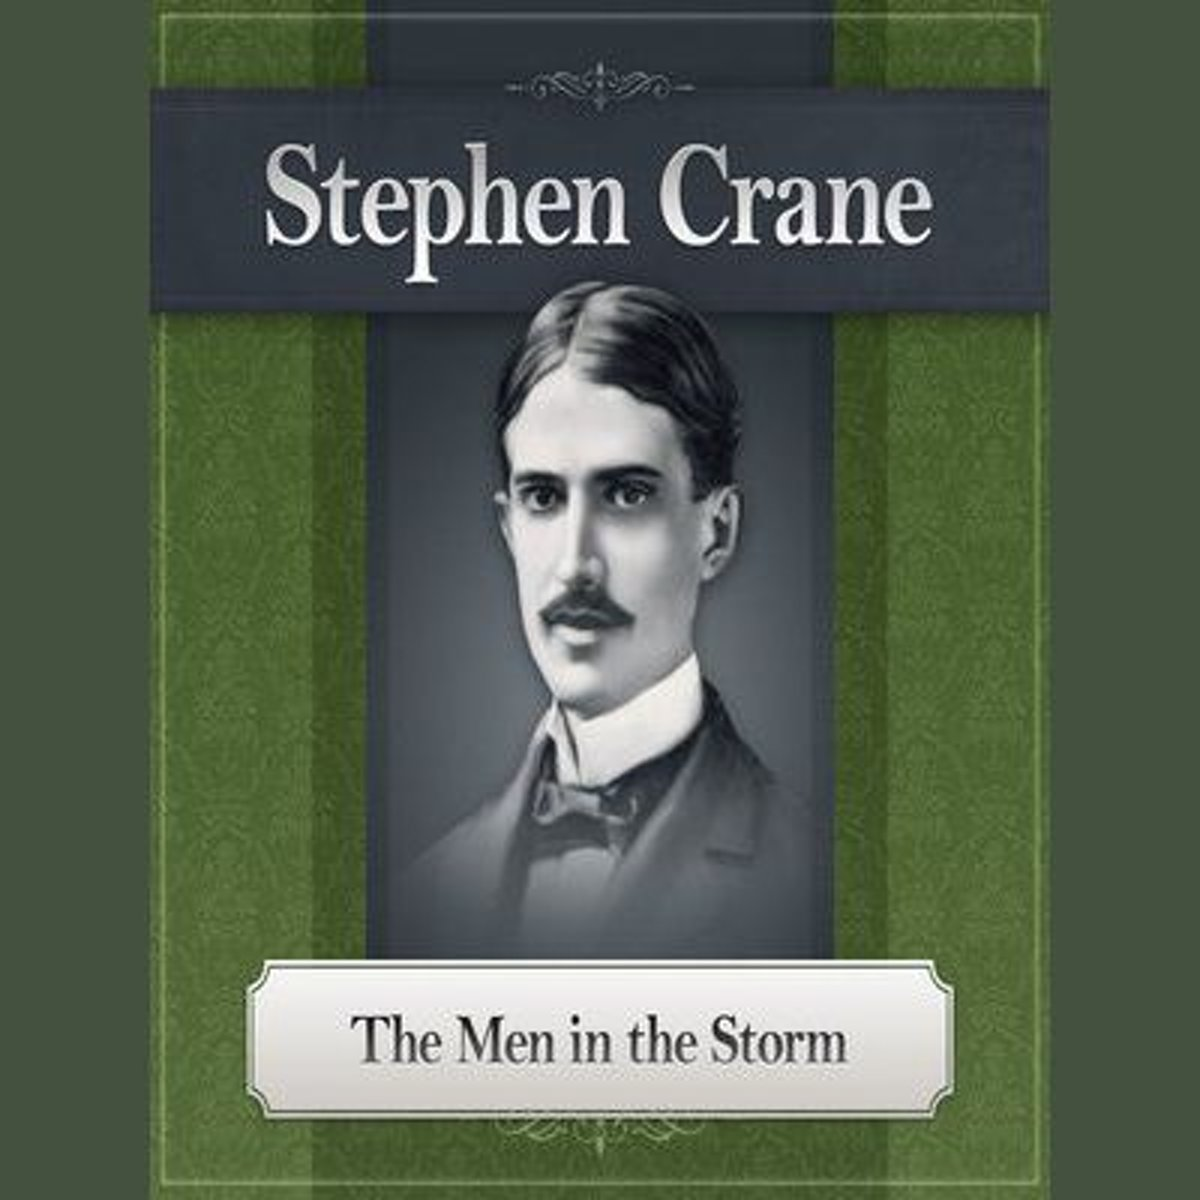 The Men in the Storm